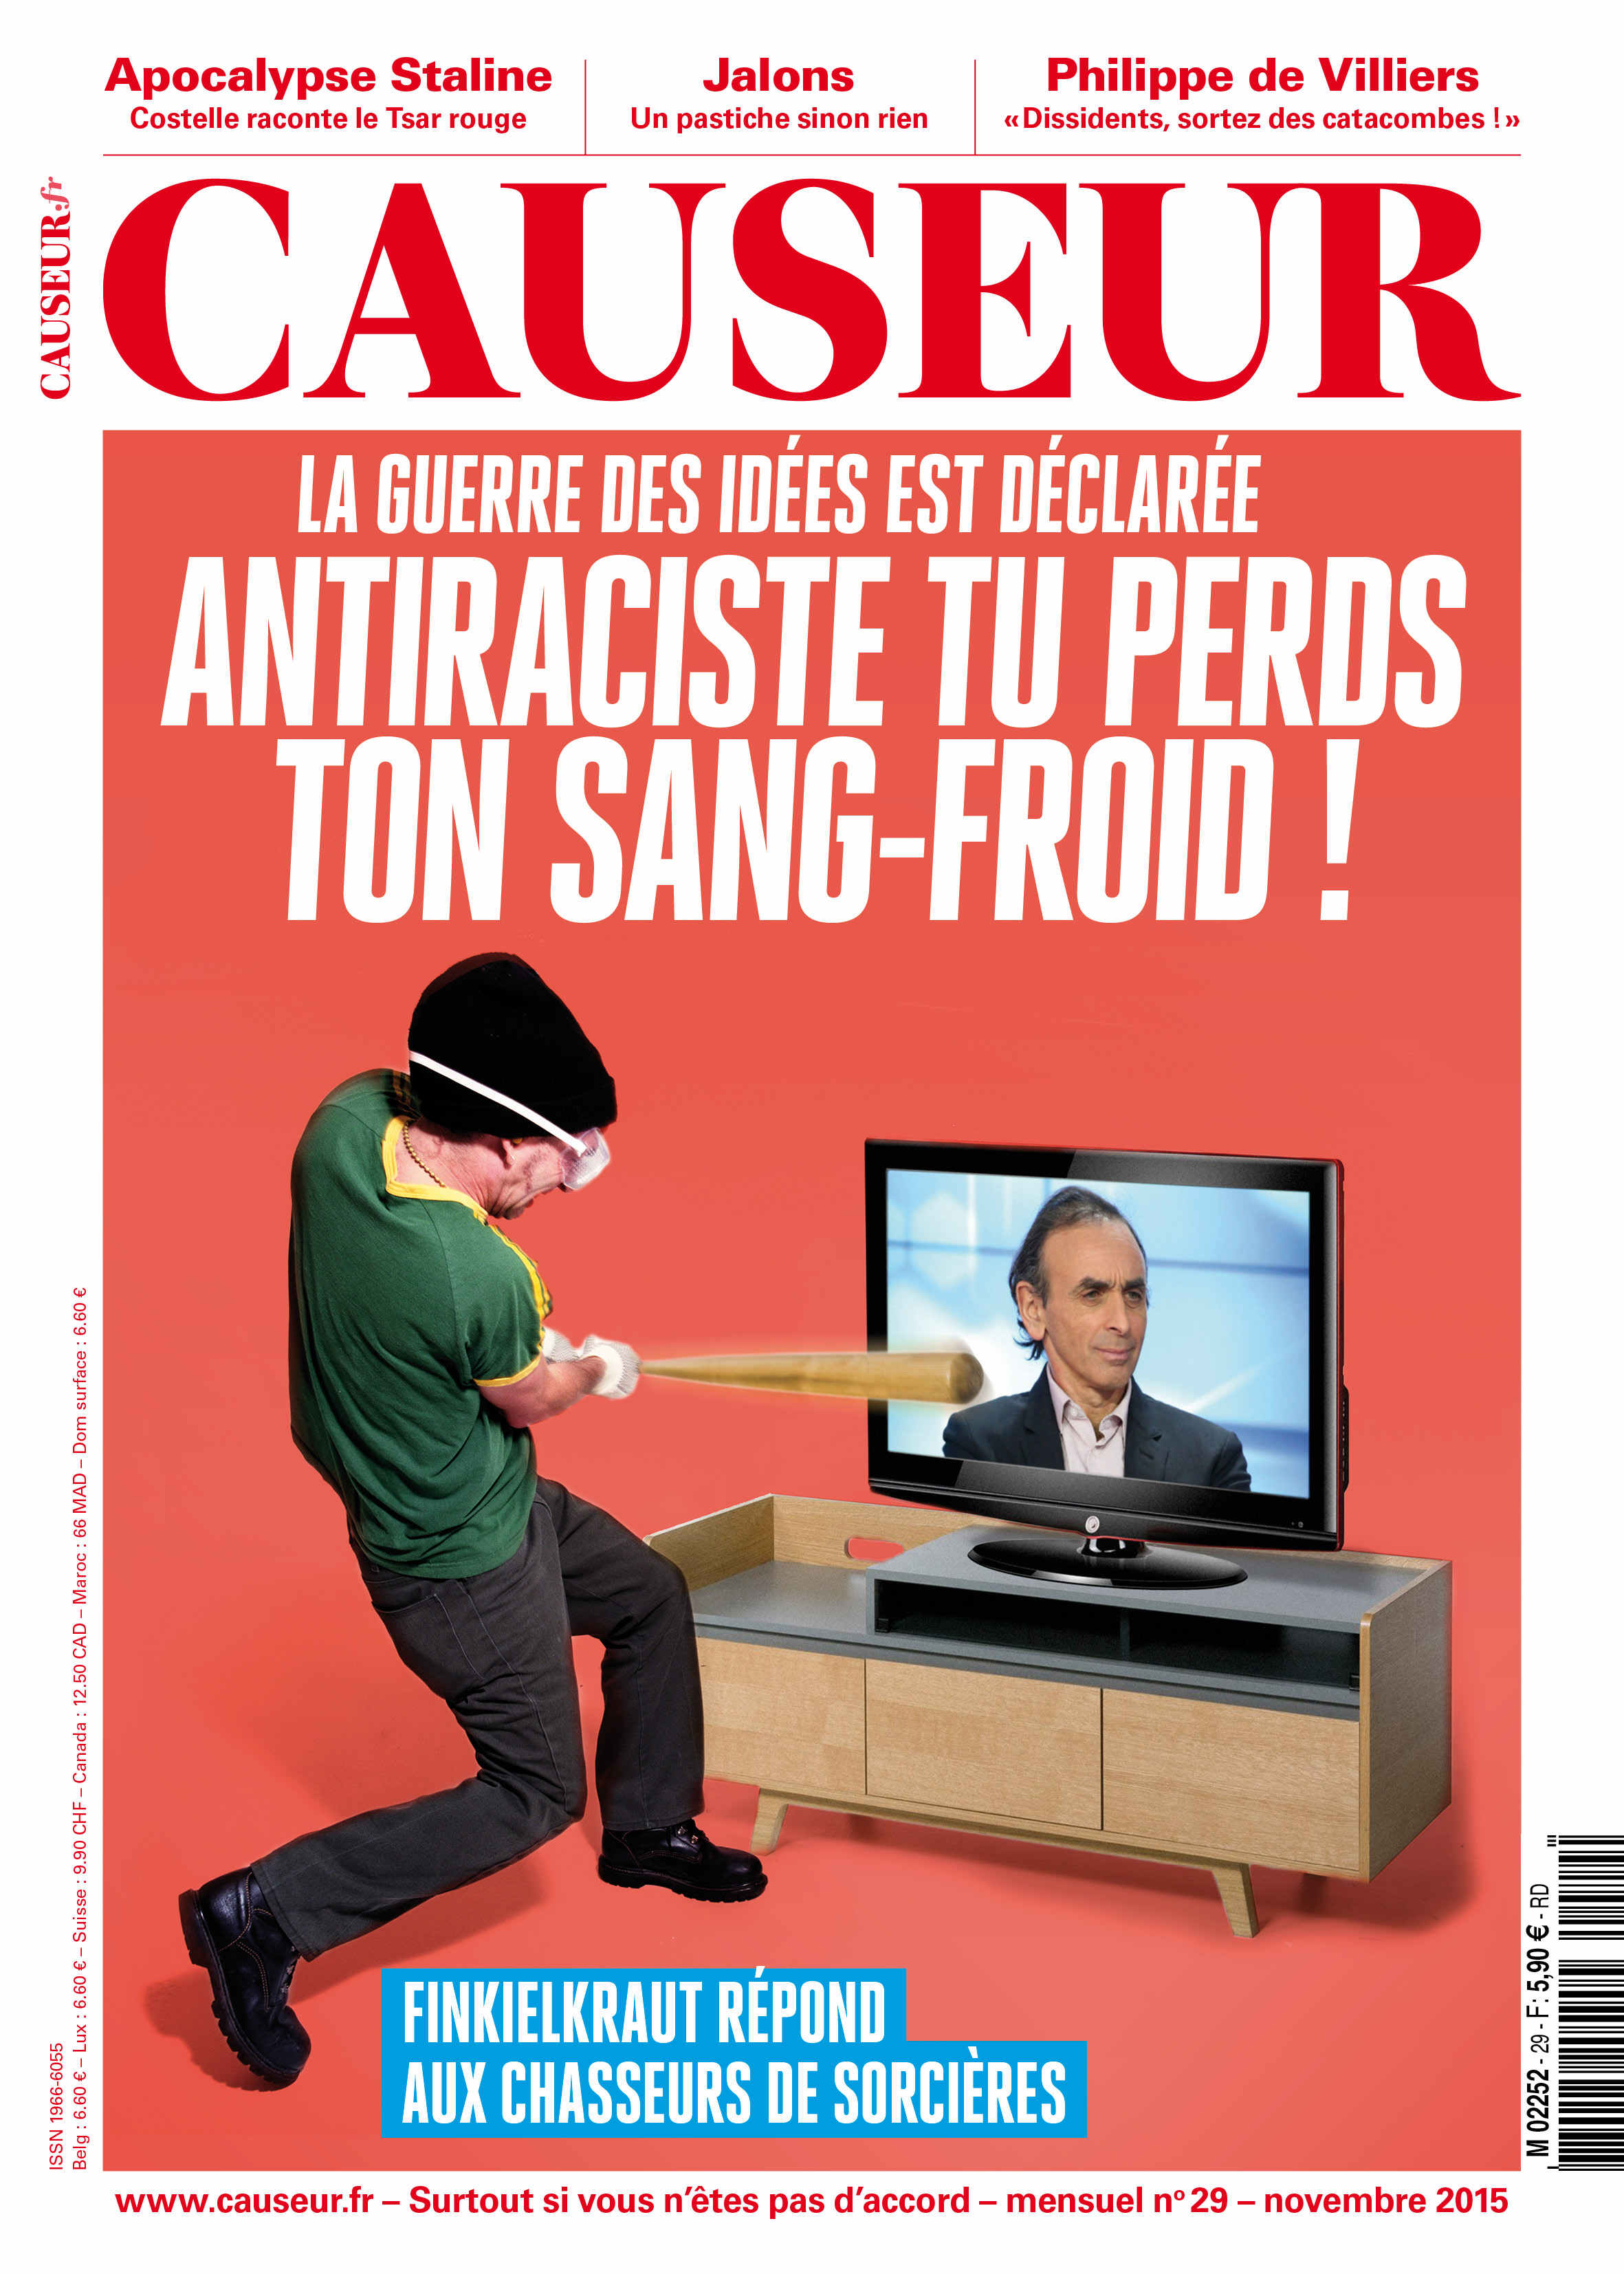 Antiraciste tu perds ton sang-froid !